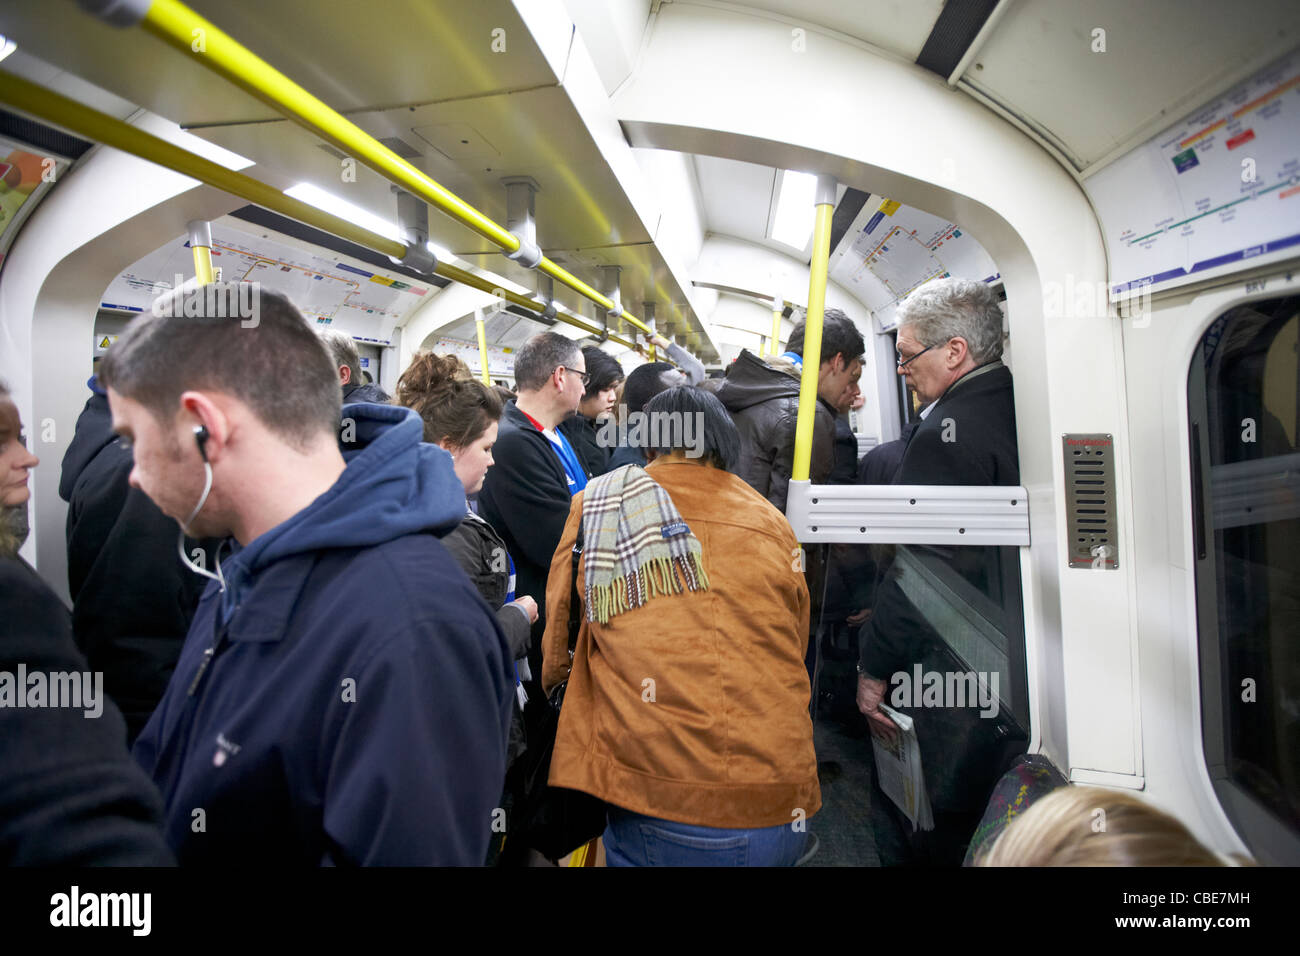 people on a crowded tube London underground England Uk United Kingdom - Stock Image